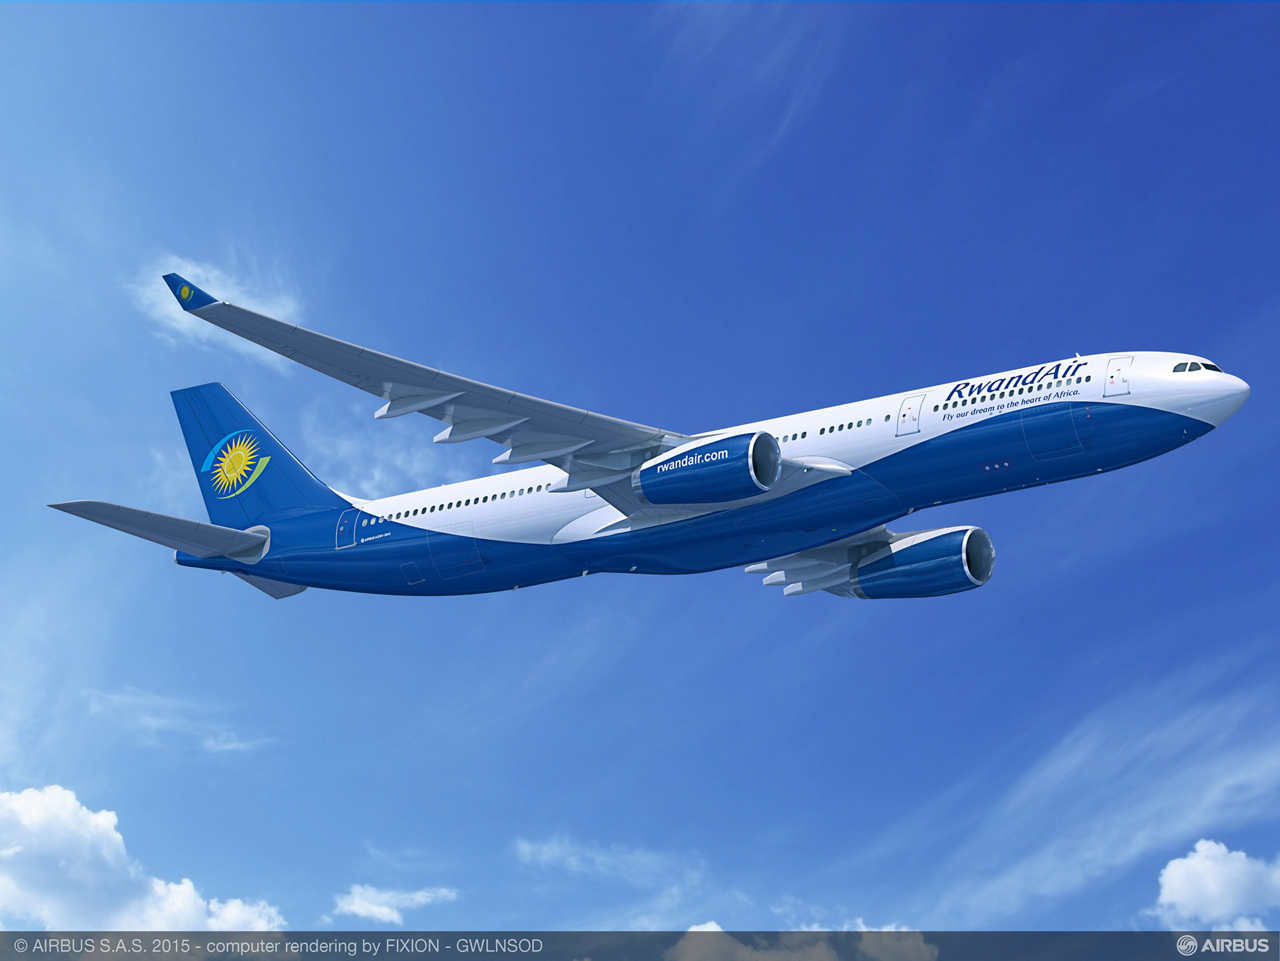 National flag carrier RwandAir will be East Africa's first airline to benefit from the A330 Family's proven efficiency following its firm order signed for an A330-300 (shown here) and an A330-200